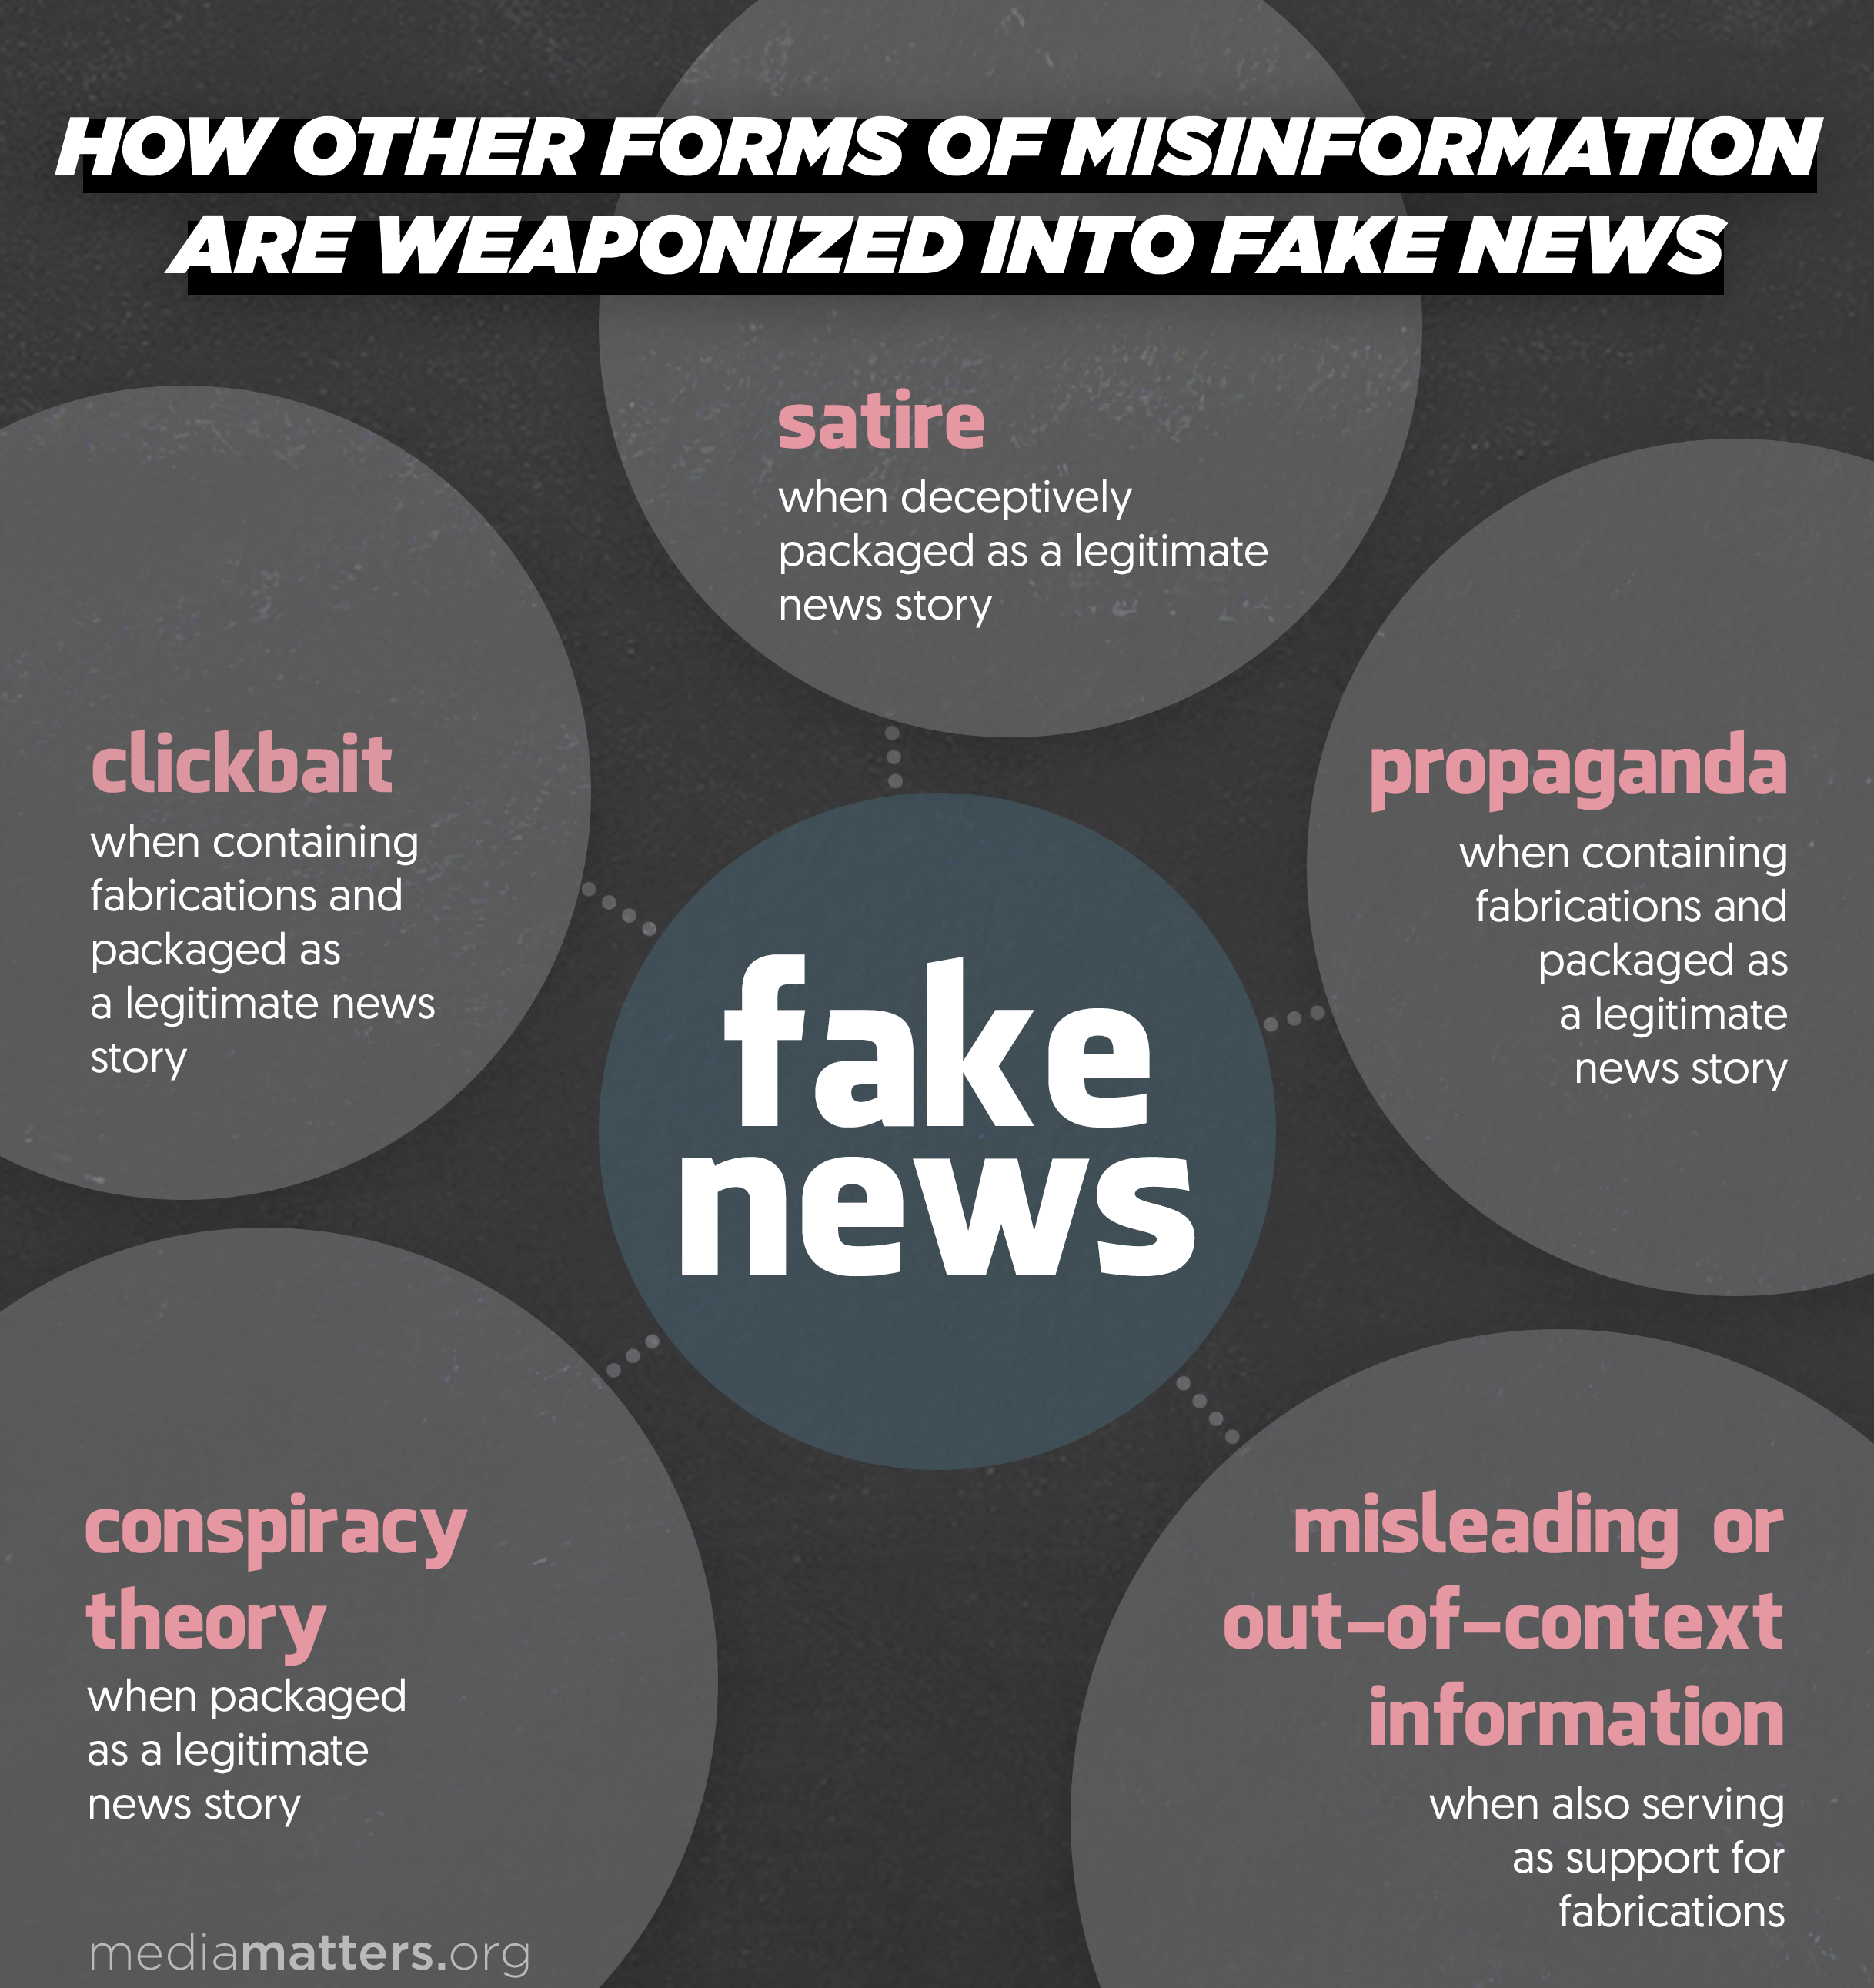 How Other Forms of Misinformation Are Weaponized into Fake News